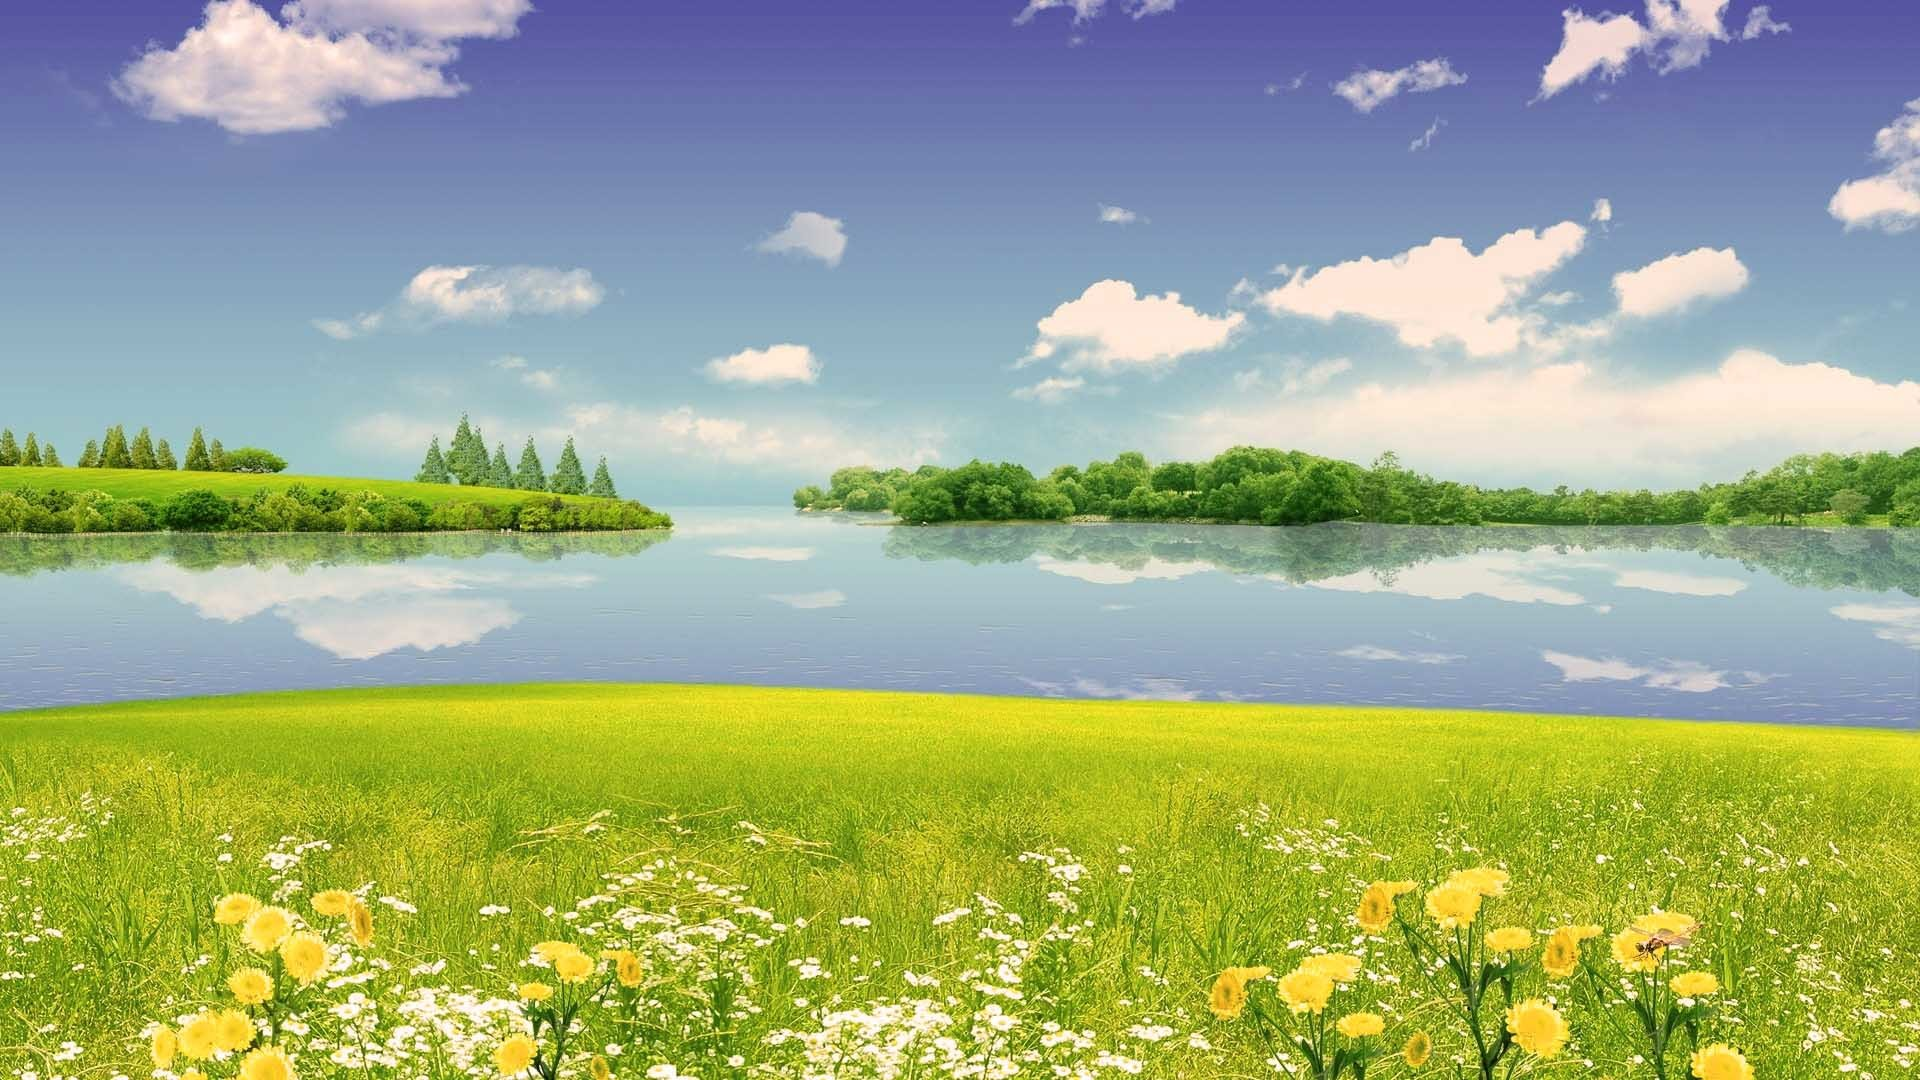 1920x1080 summer scene wallpaper nature gallery summer scene wallpaper .